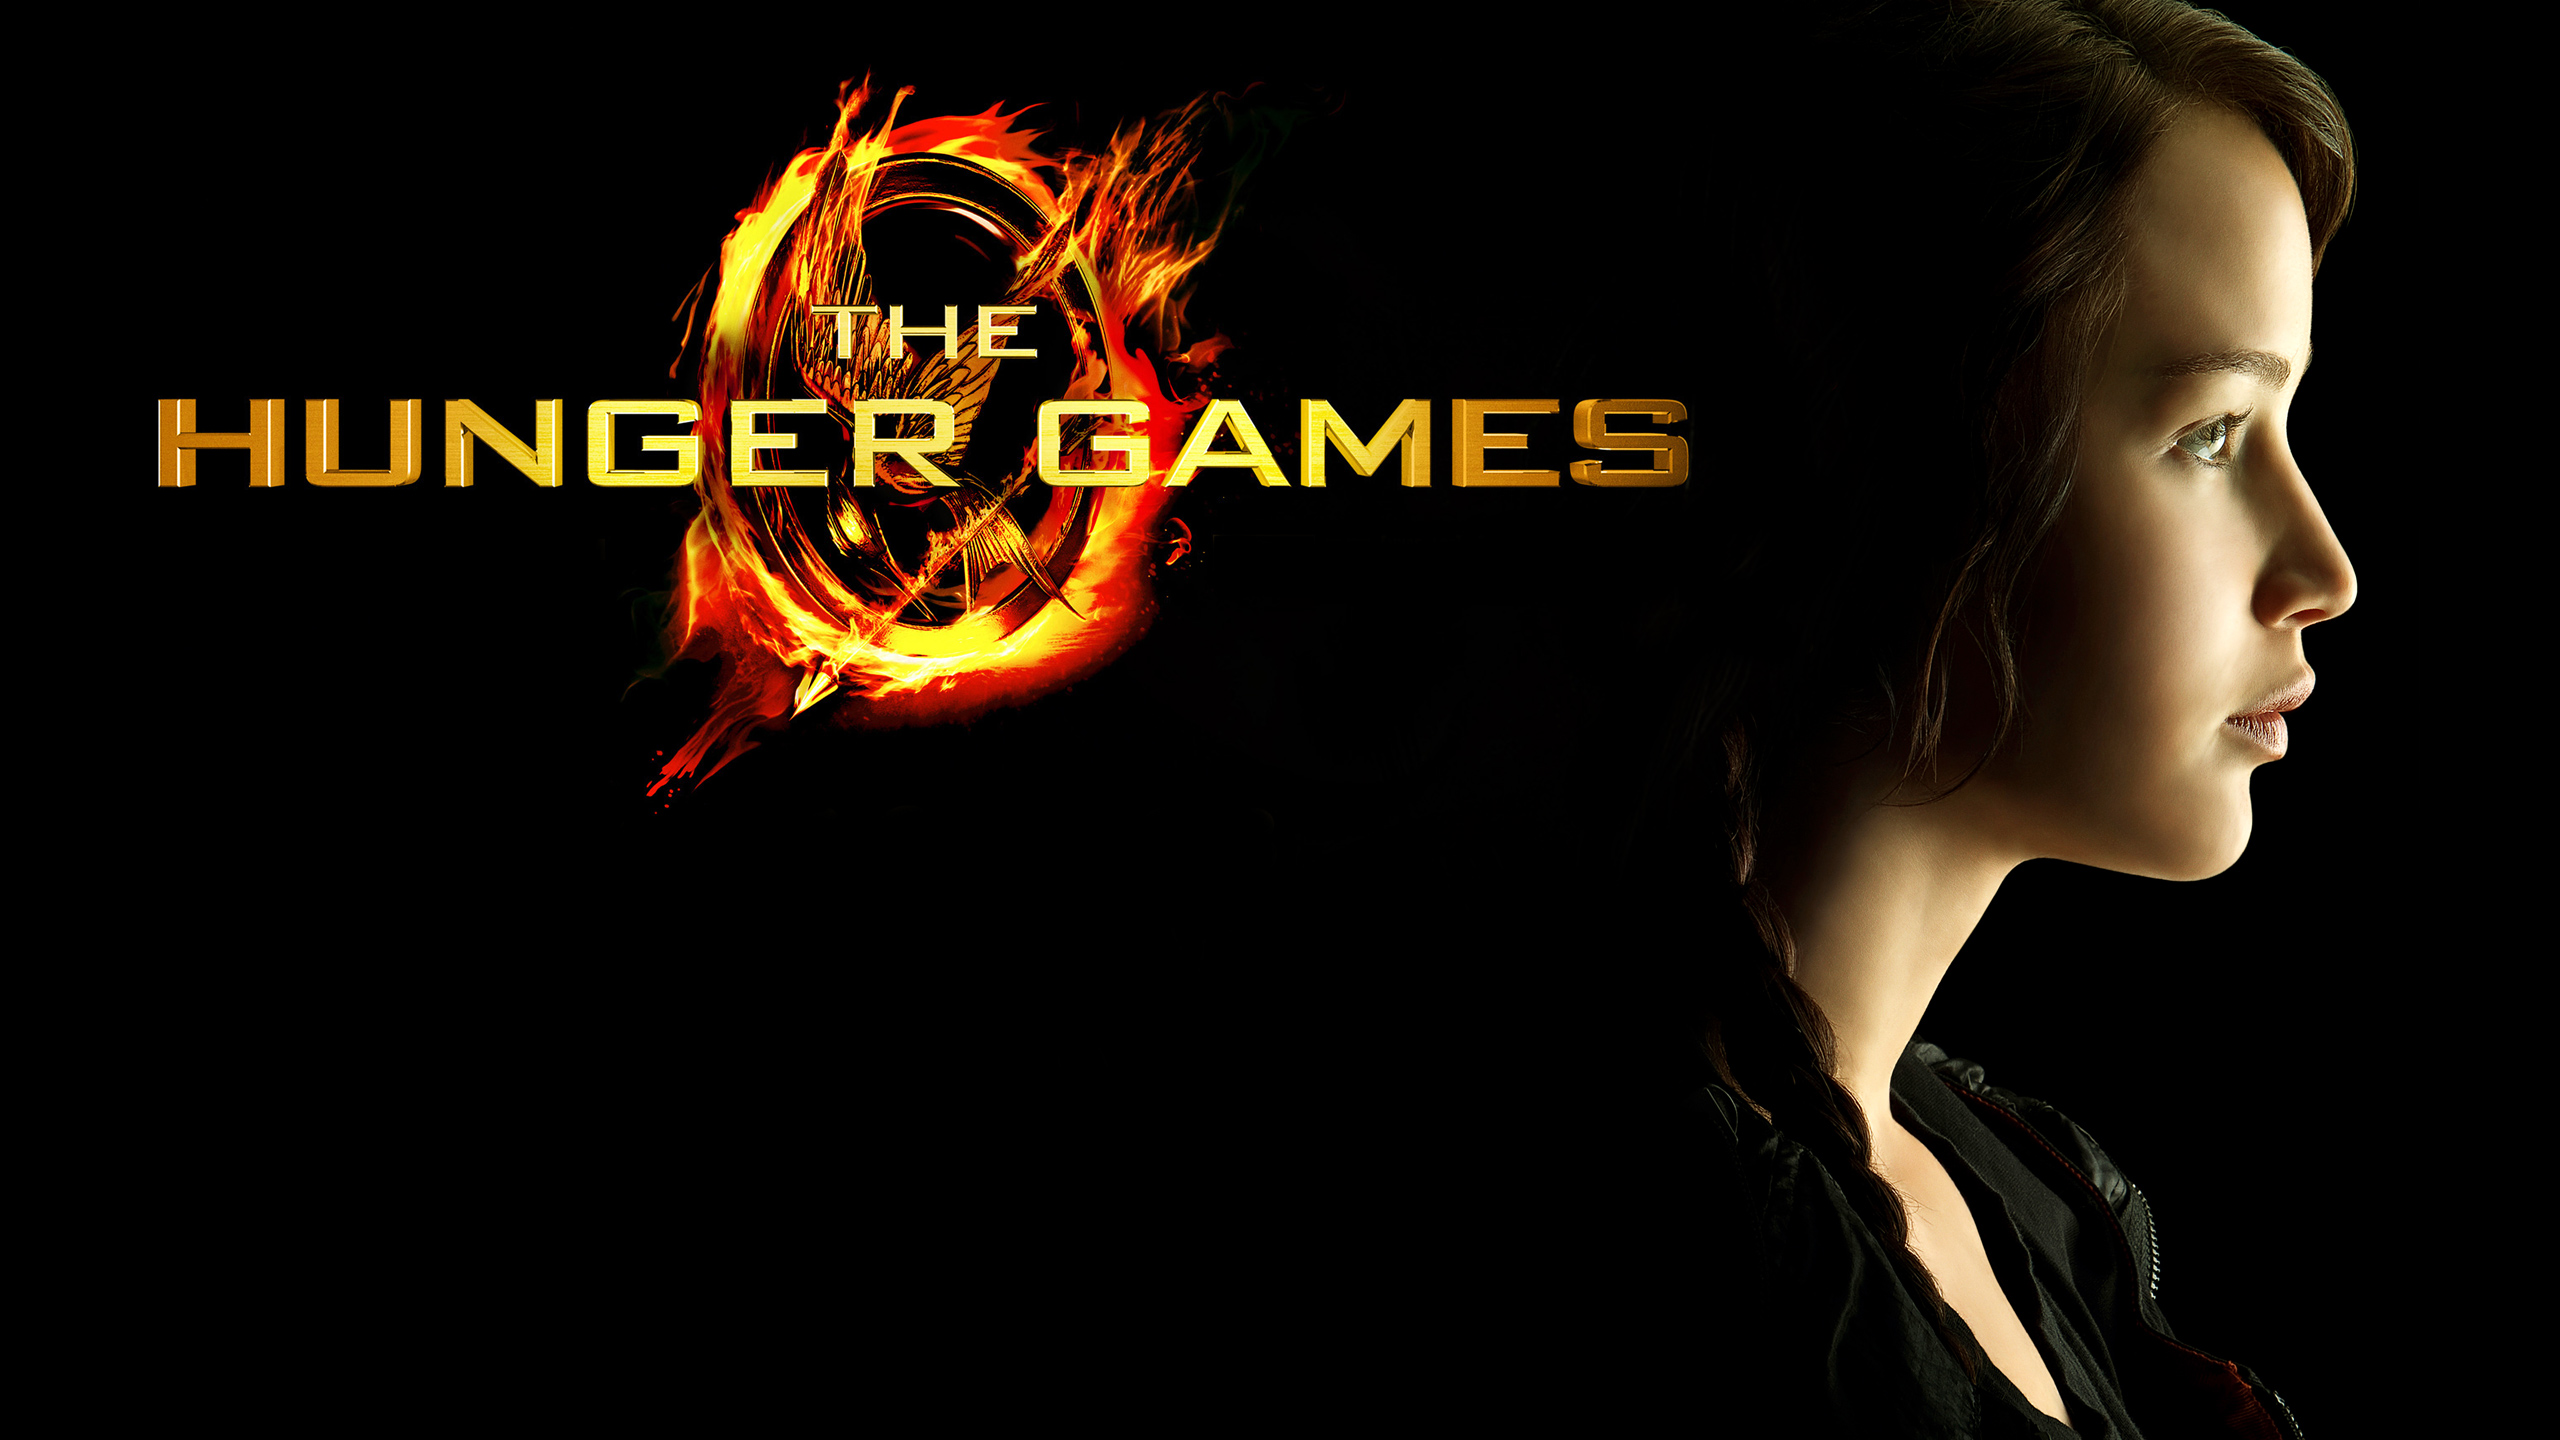 Jennifer Lawrence Hunger Games Exclusive HD Wallpapers 2815 2560x1440